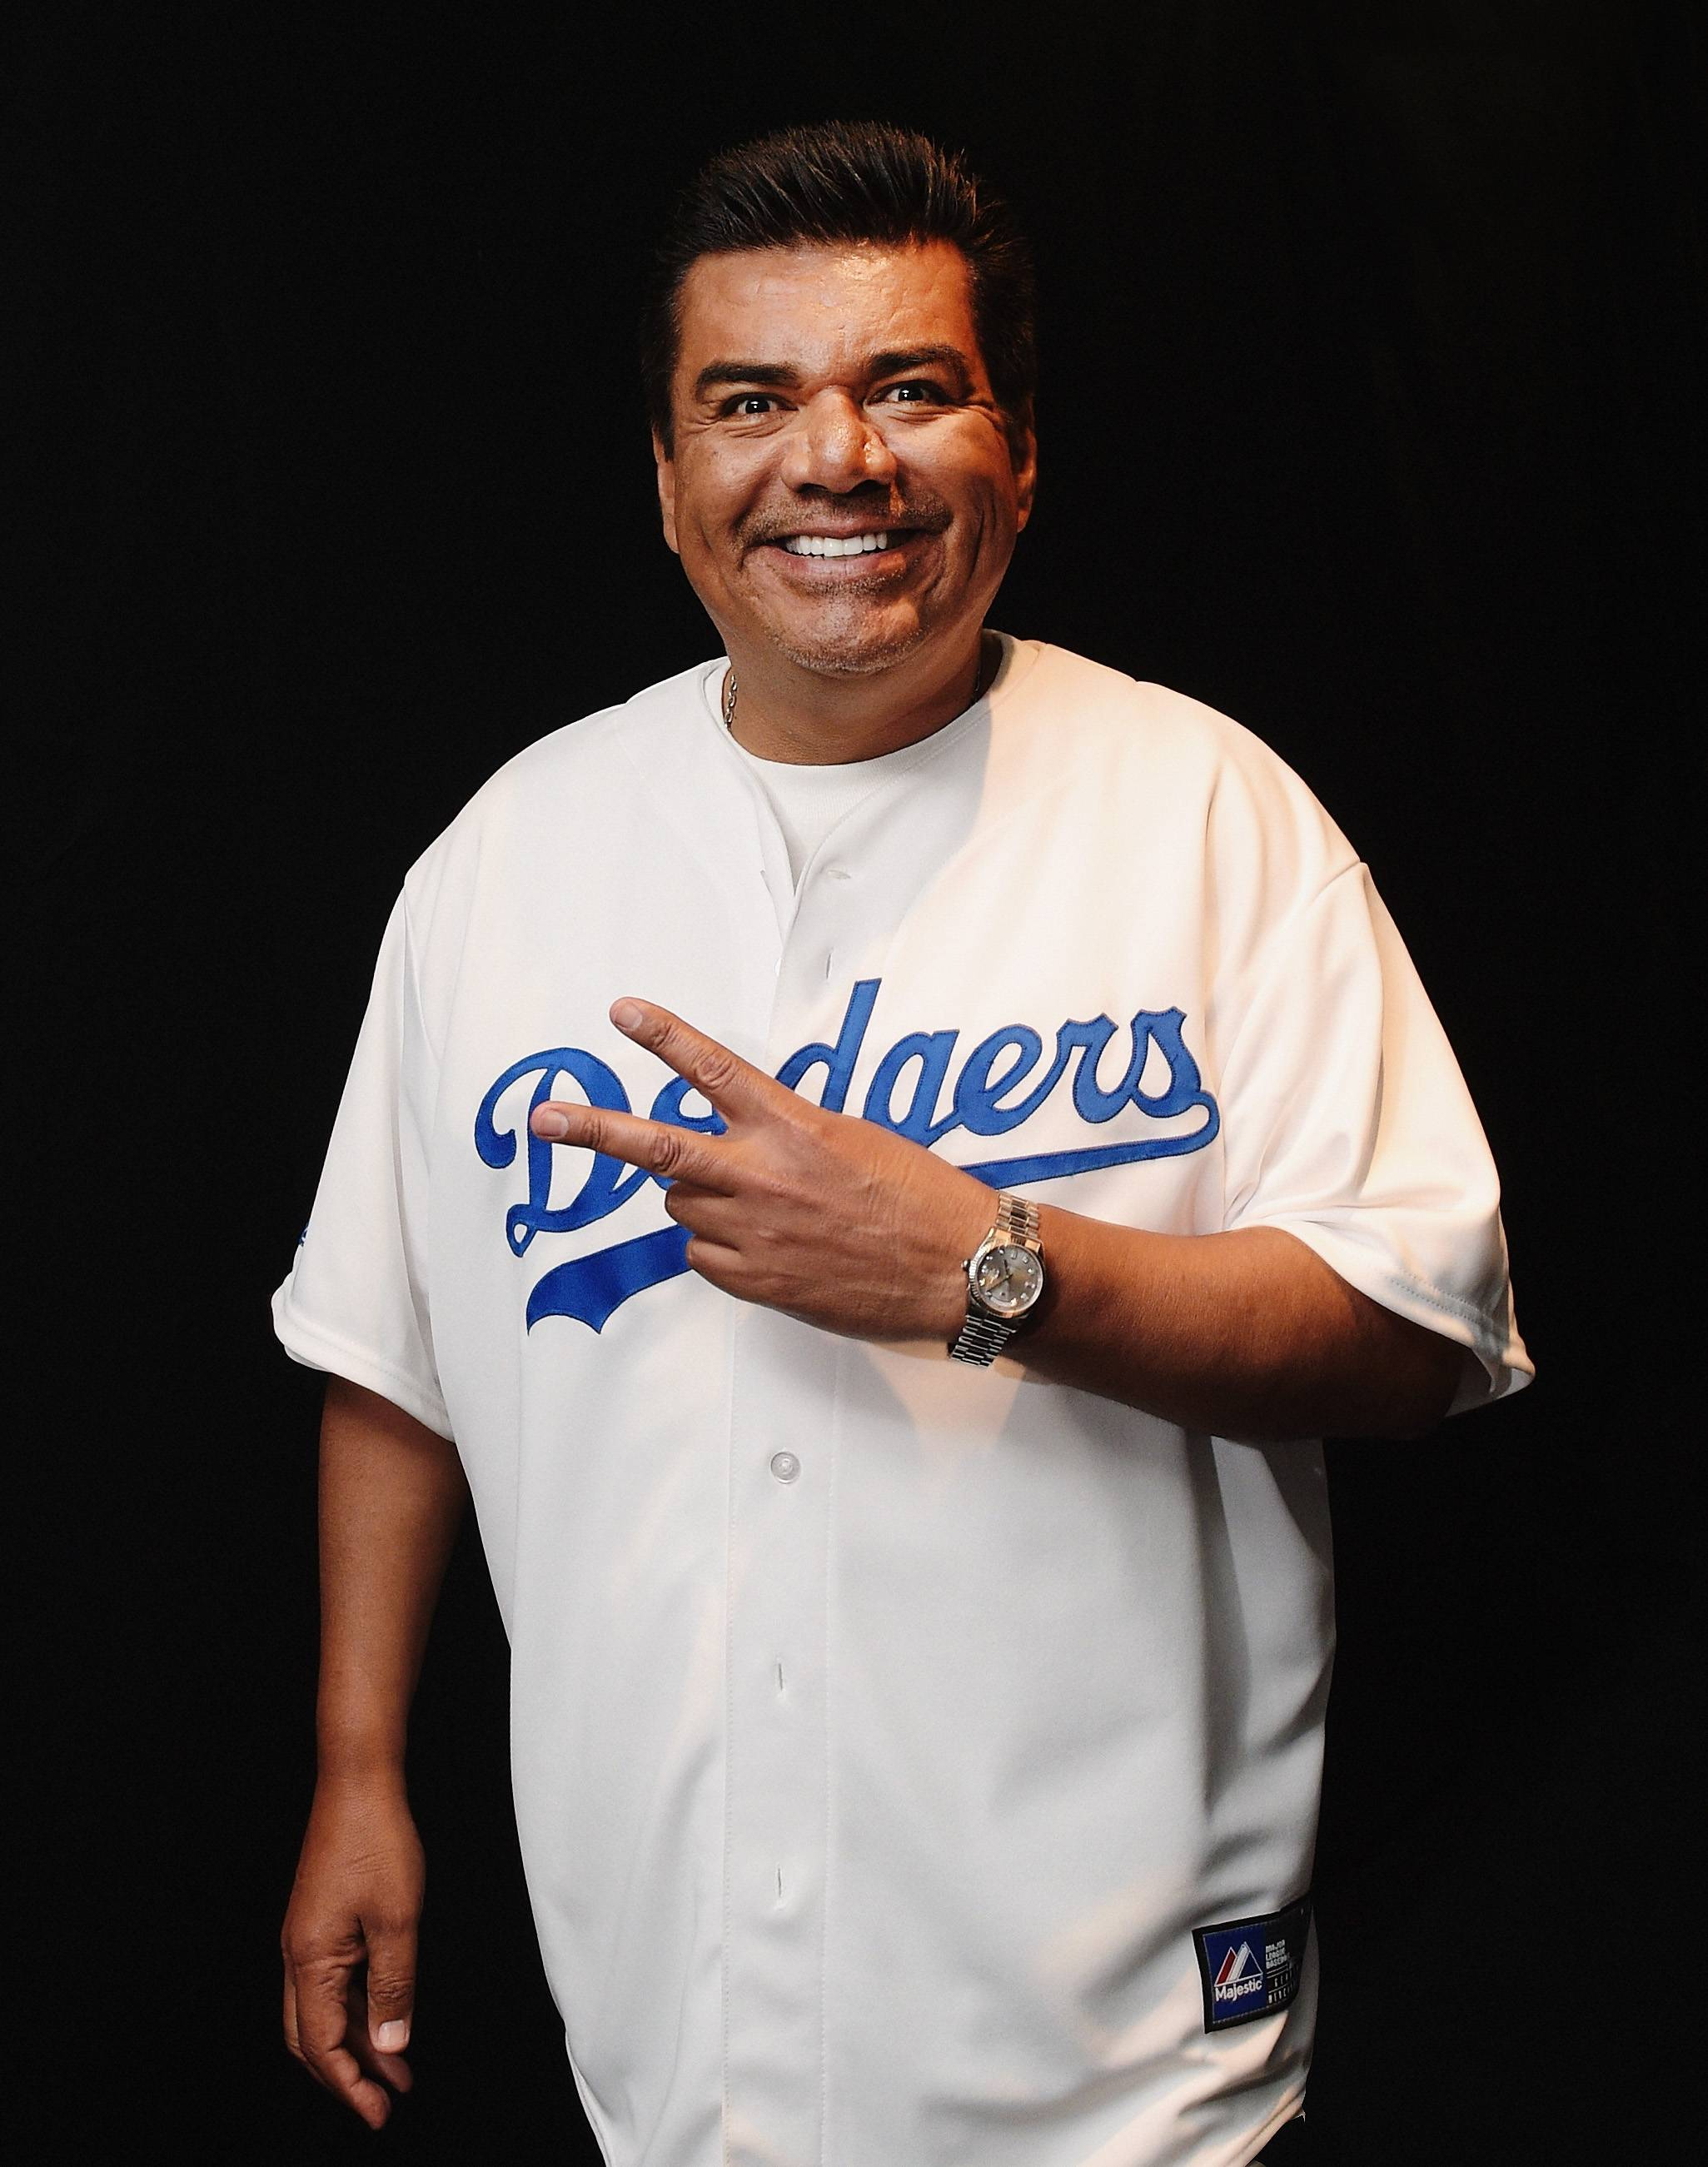 10. He's a Dodgers Fan - What's more Hollywood than that? (Photo: Jason Kempin/Getty Images)